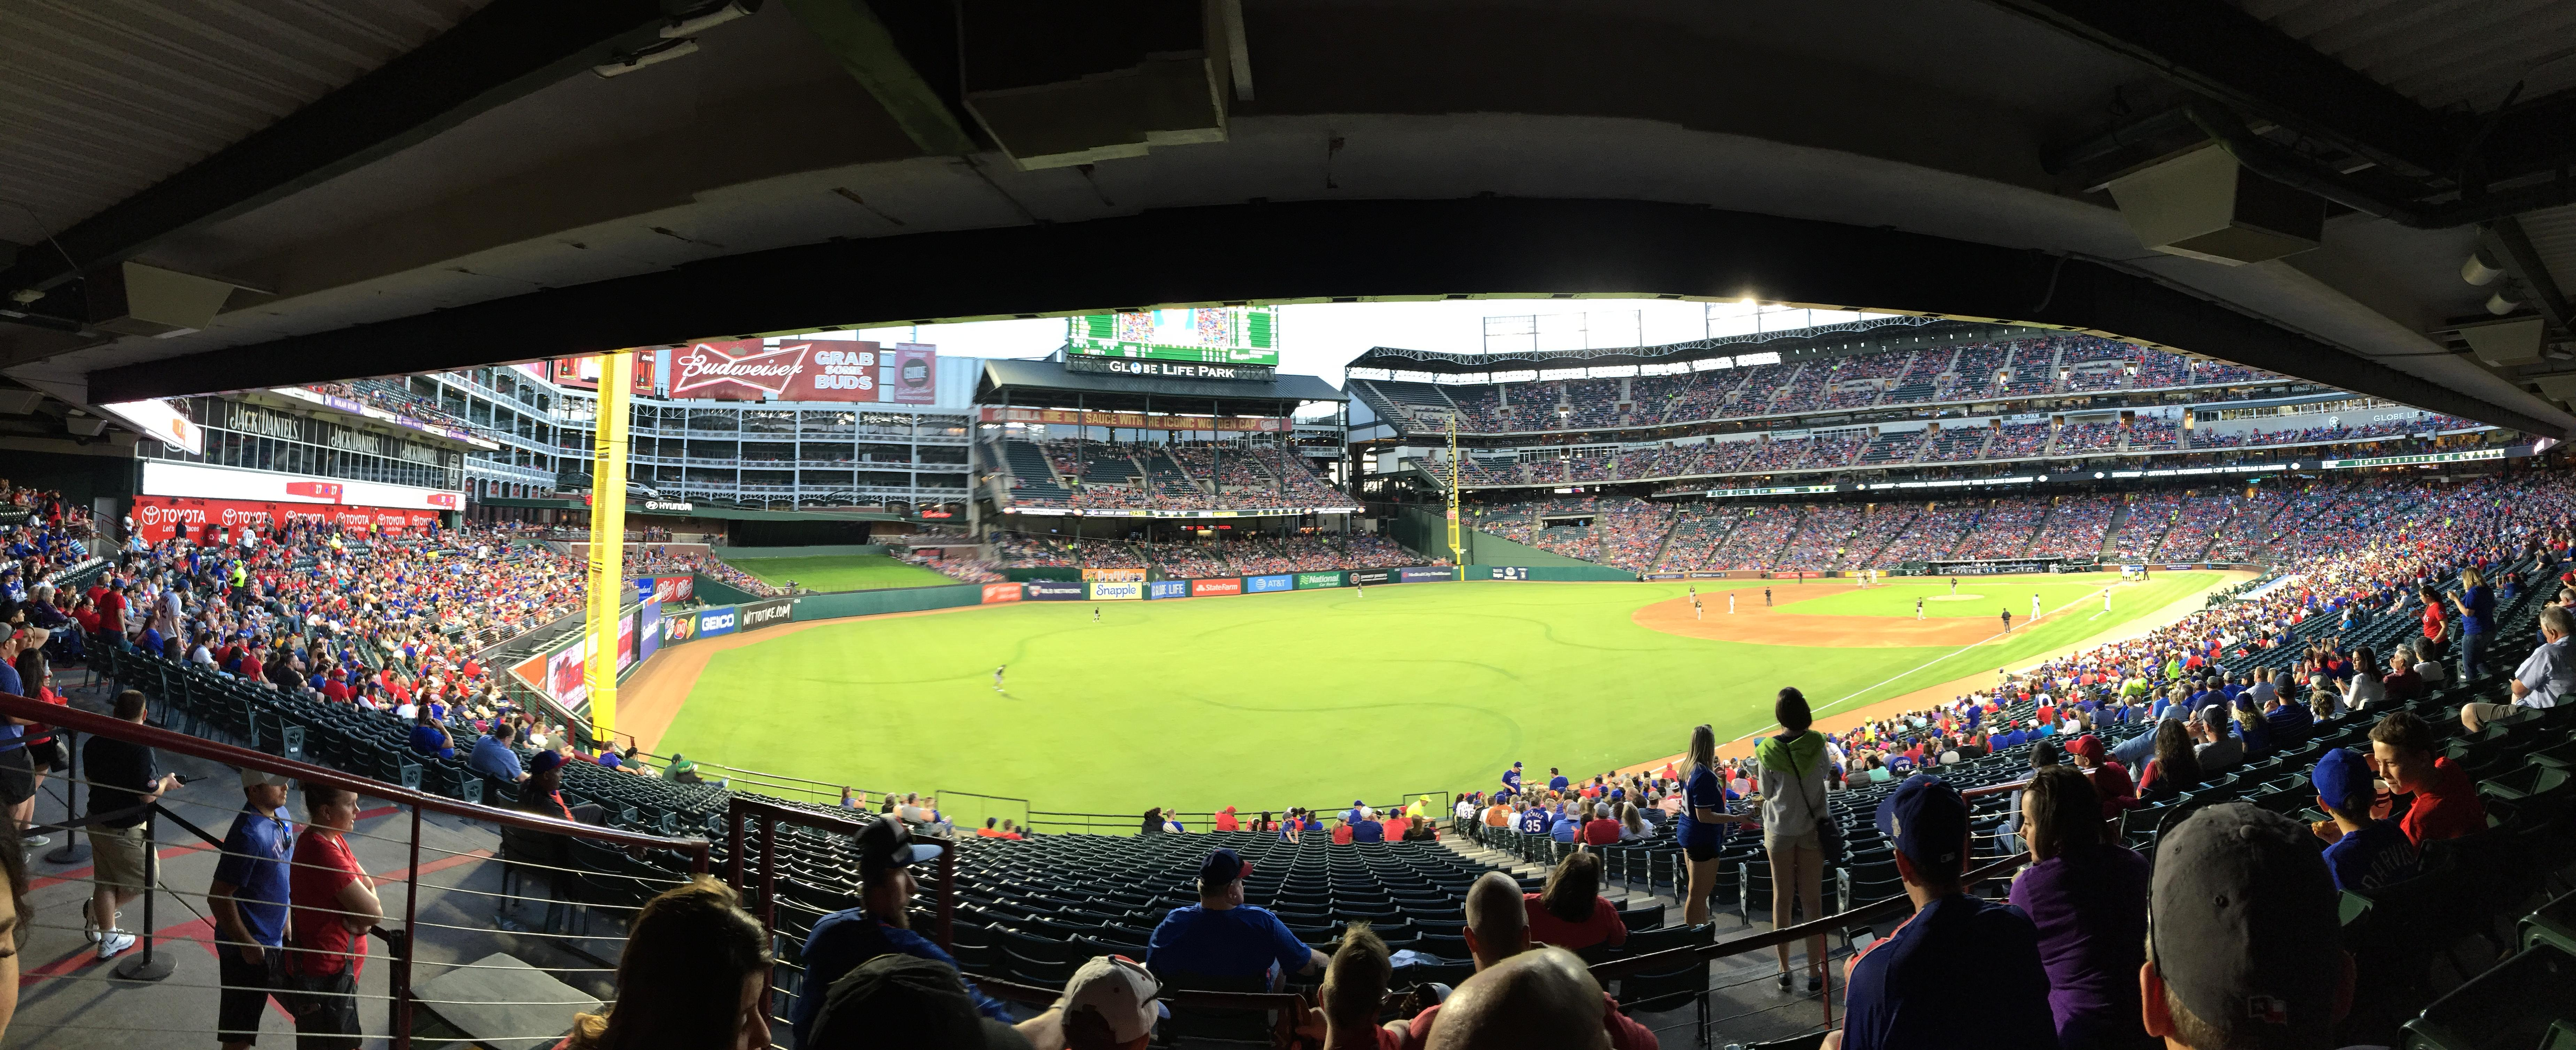 Globe Life Park in Arlington Section 112 Row 36 Seat 3